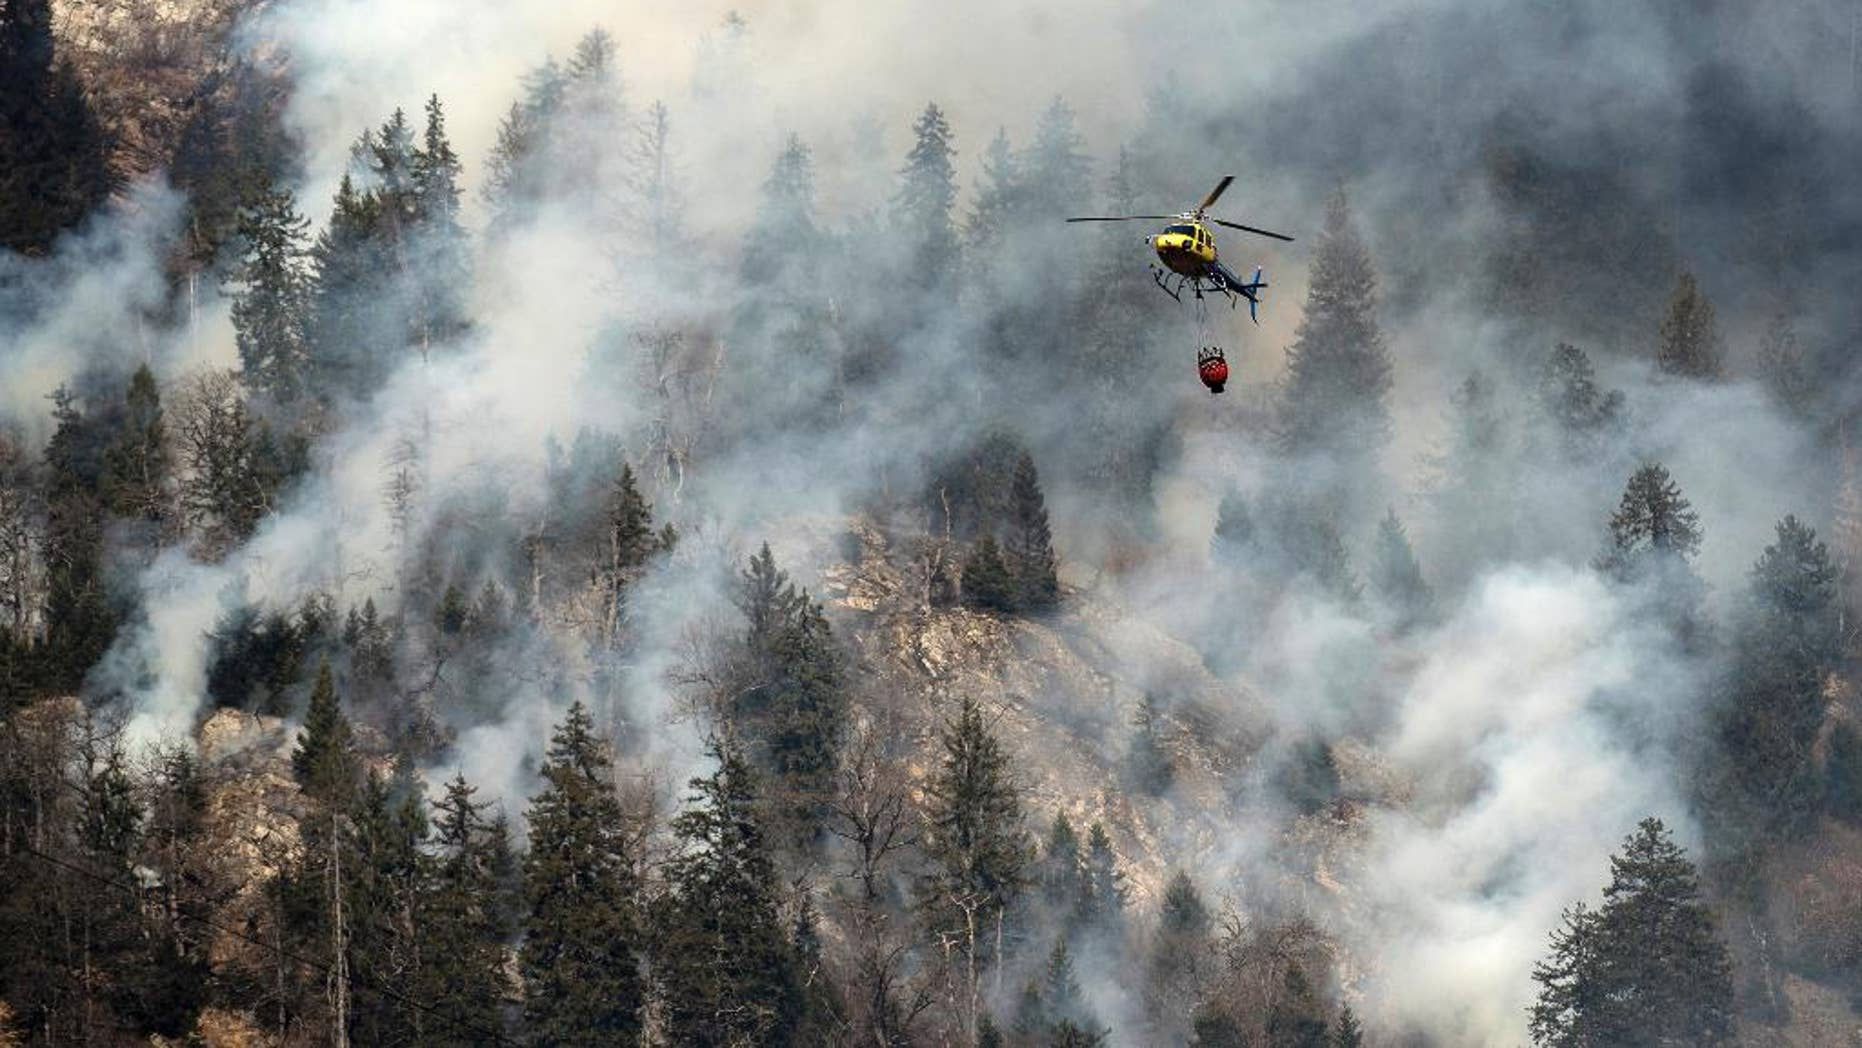 A fire fighting helicopter discharges water over the forest fires near Mesocco in Southern Switzerland, Wednesday, Dec.  28, 2016. (Gabriele Putzu/Keystone,Ti-Press via AP)